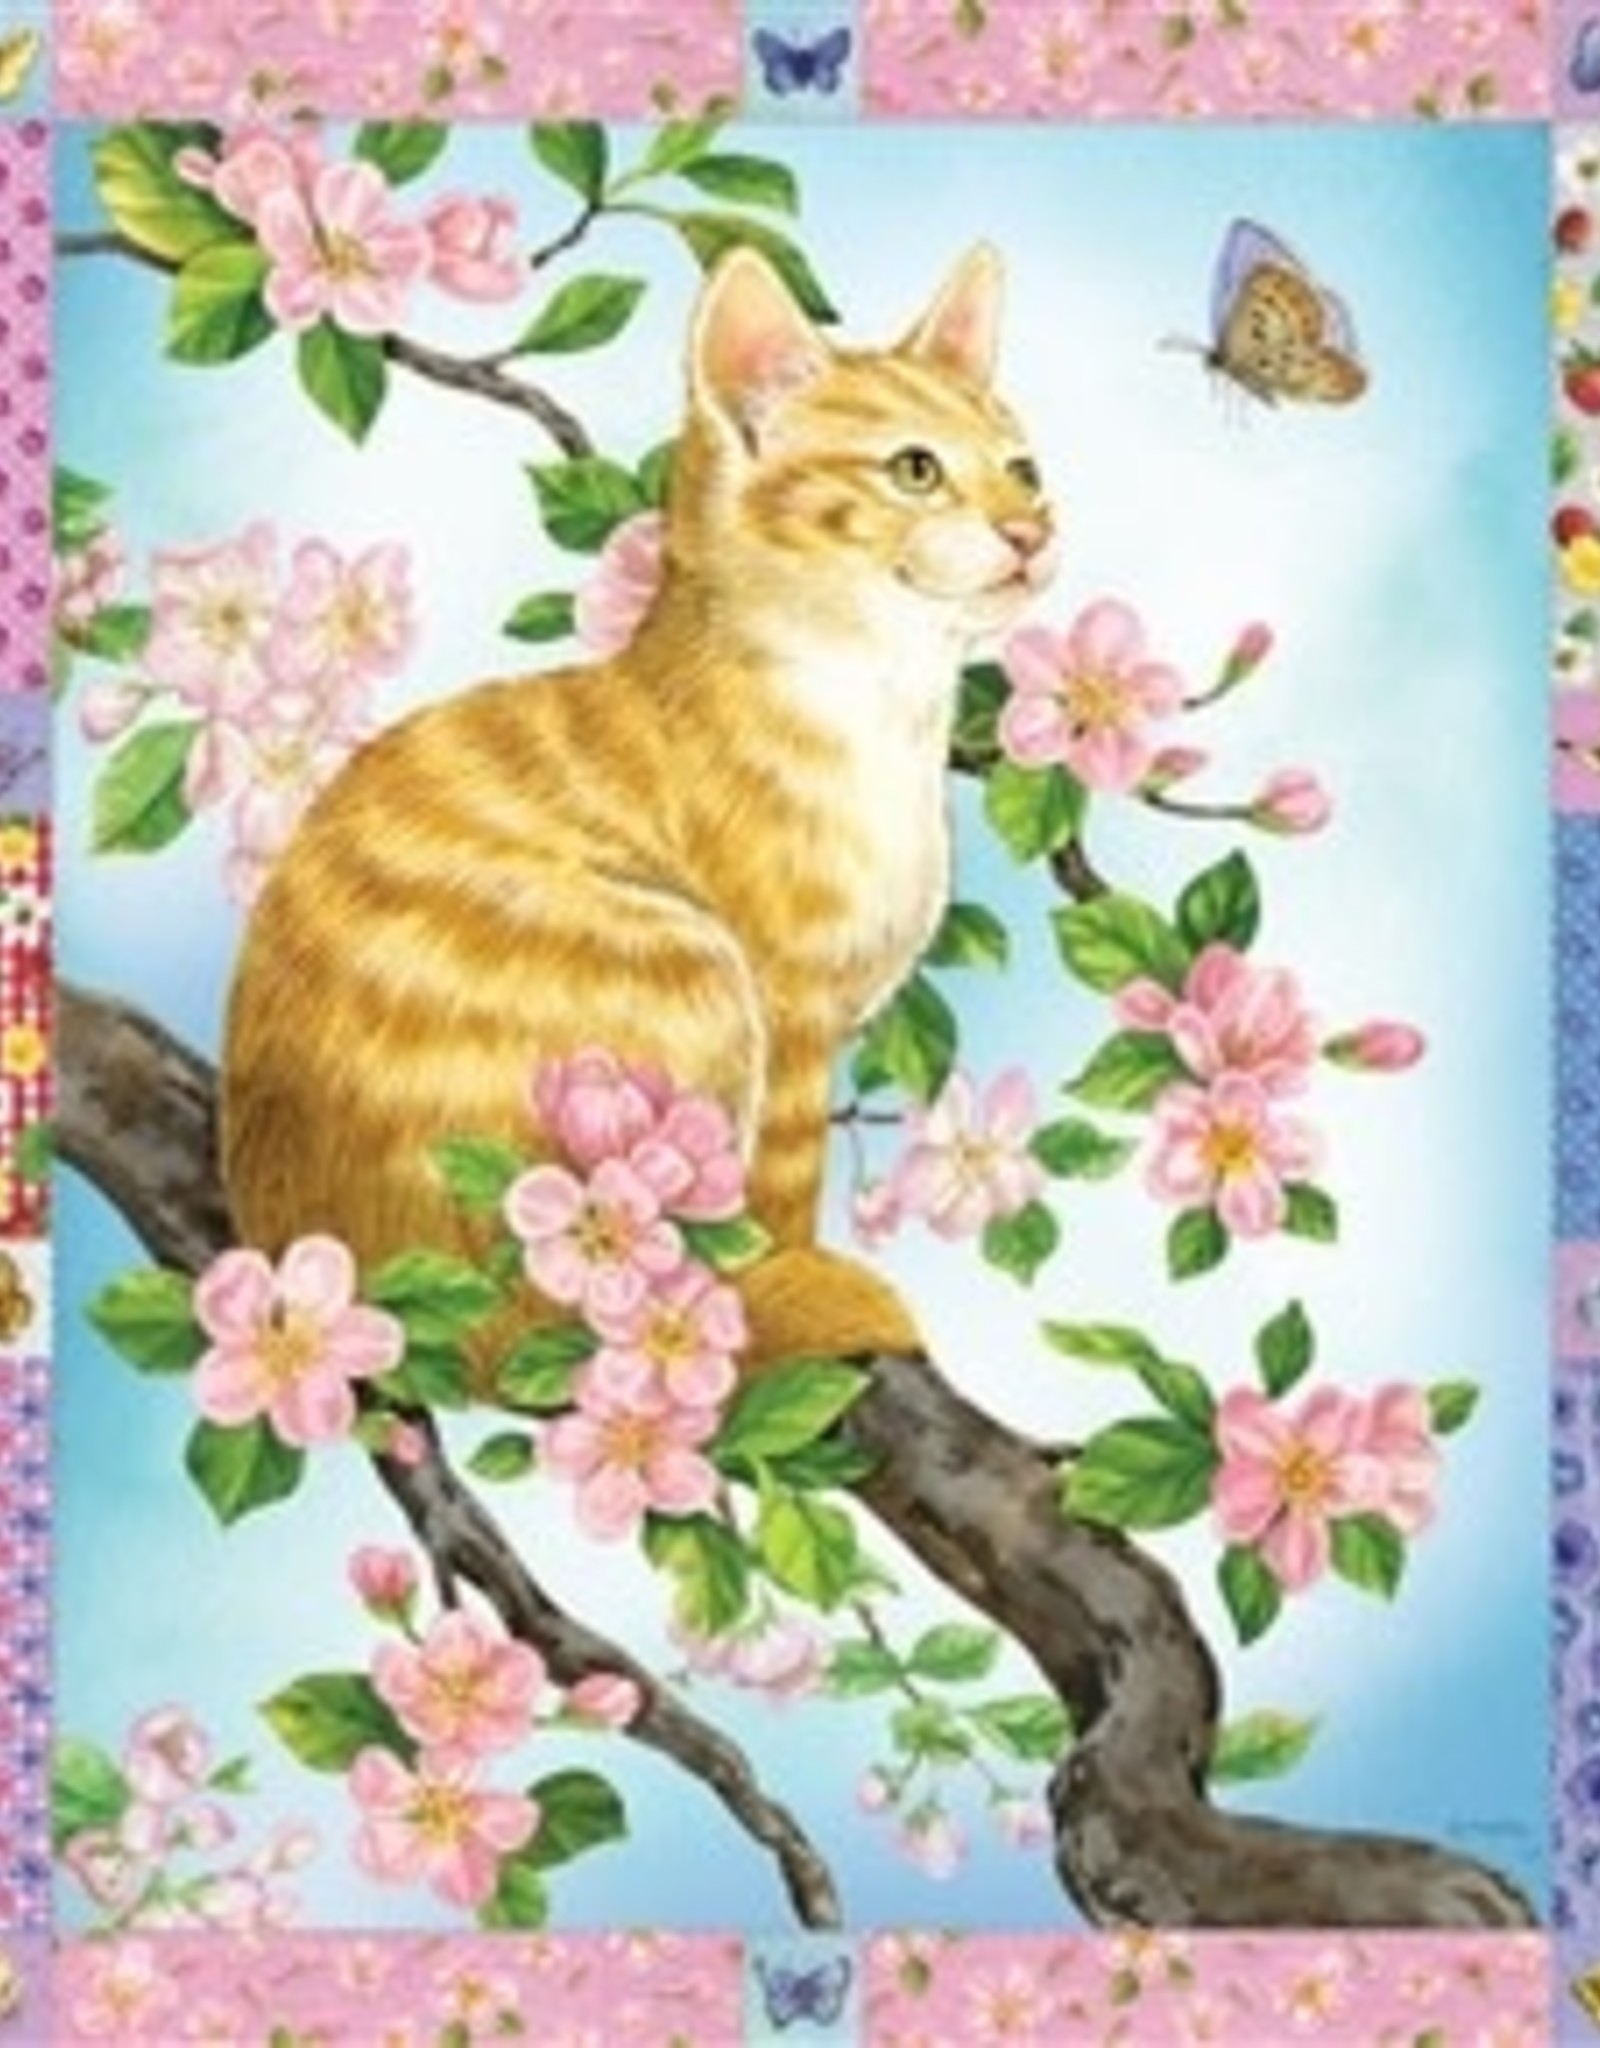 Cobble Hill Blossoms and Kittens Quilt 1000pc